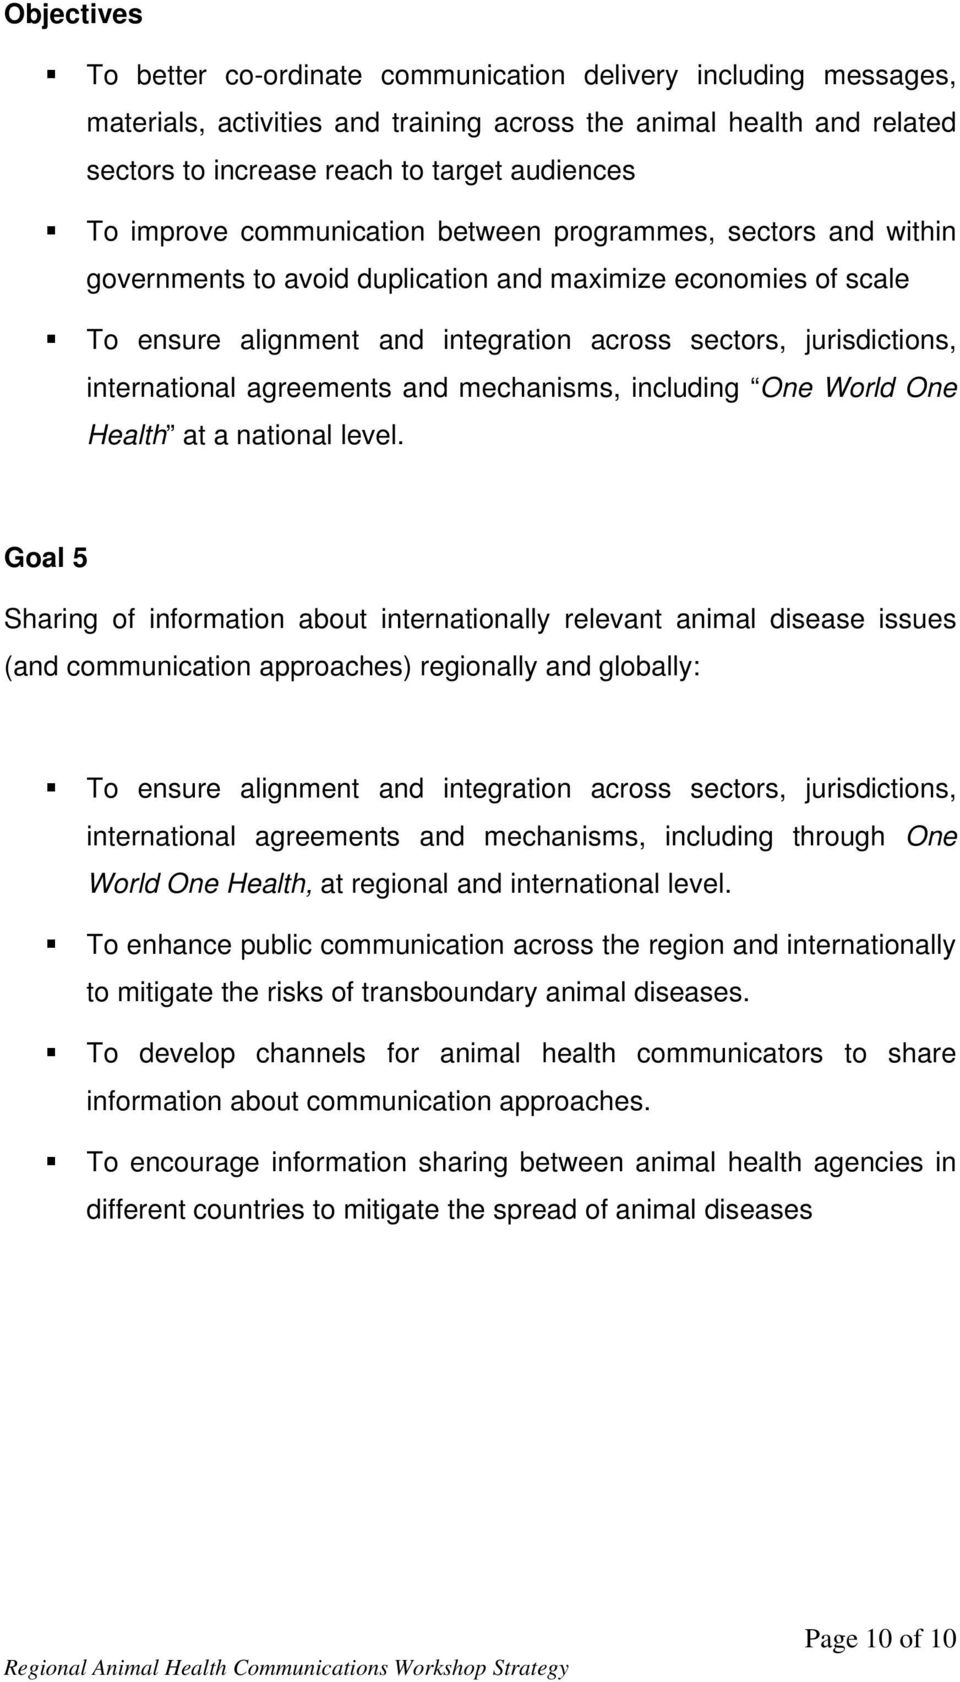 international agreements and mechanisms, including One World One Health at a national level.